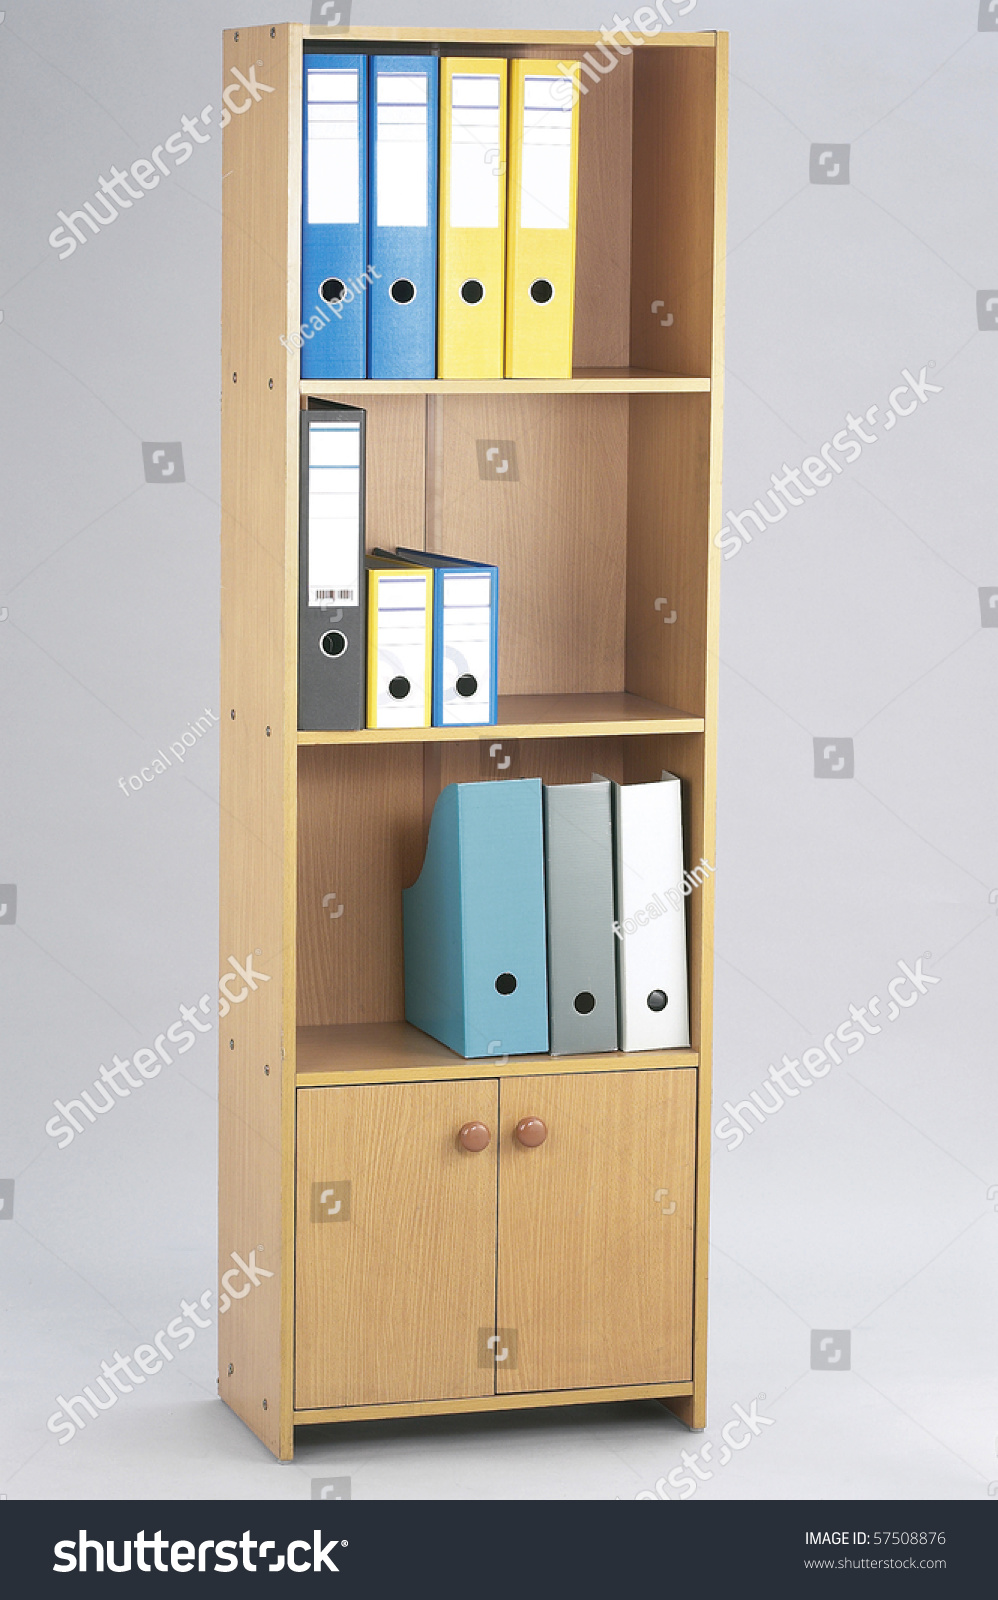 Office Folders Shelf Organizer Stock Photo Shutterstock